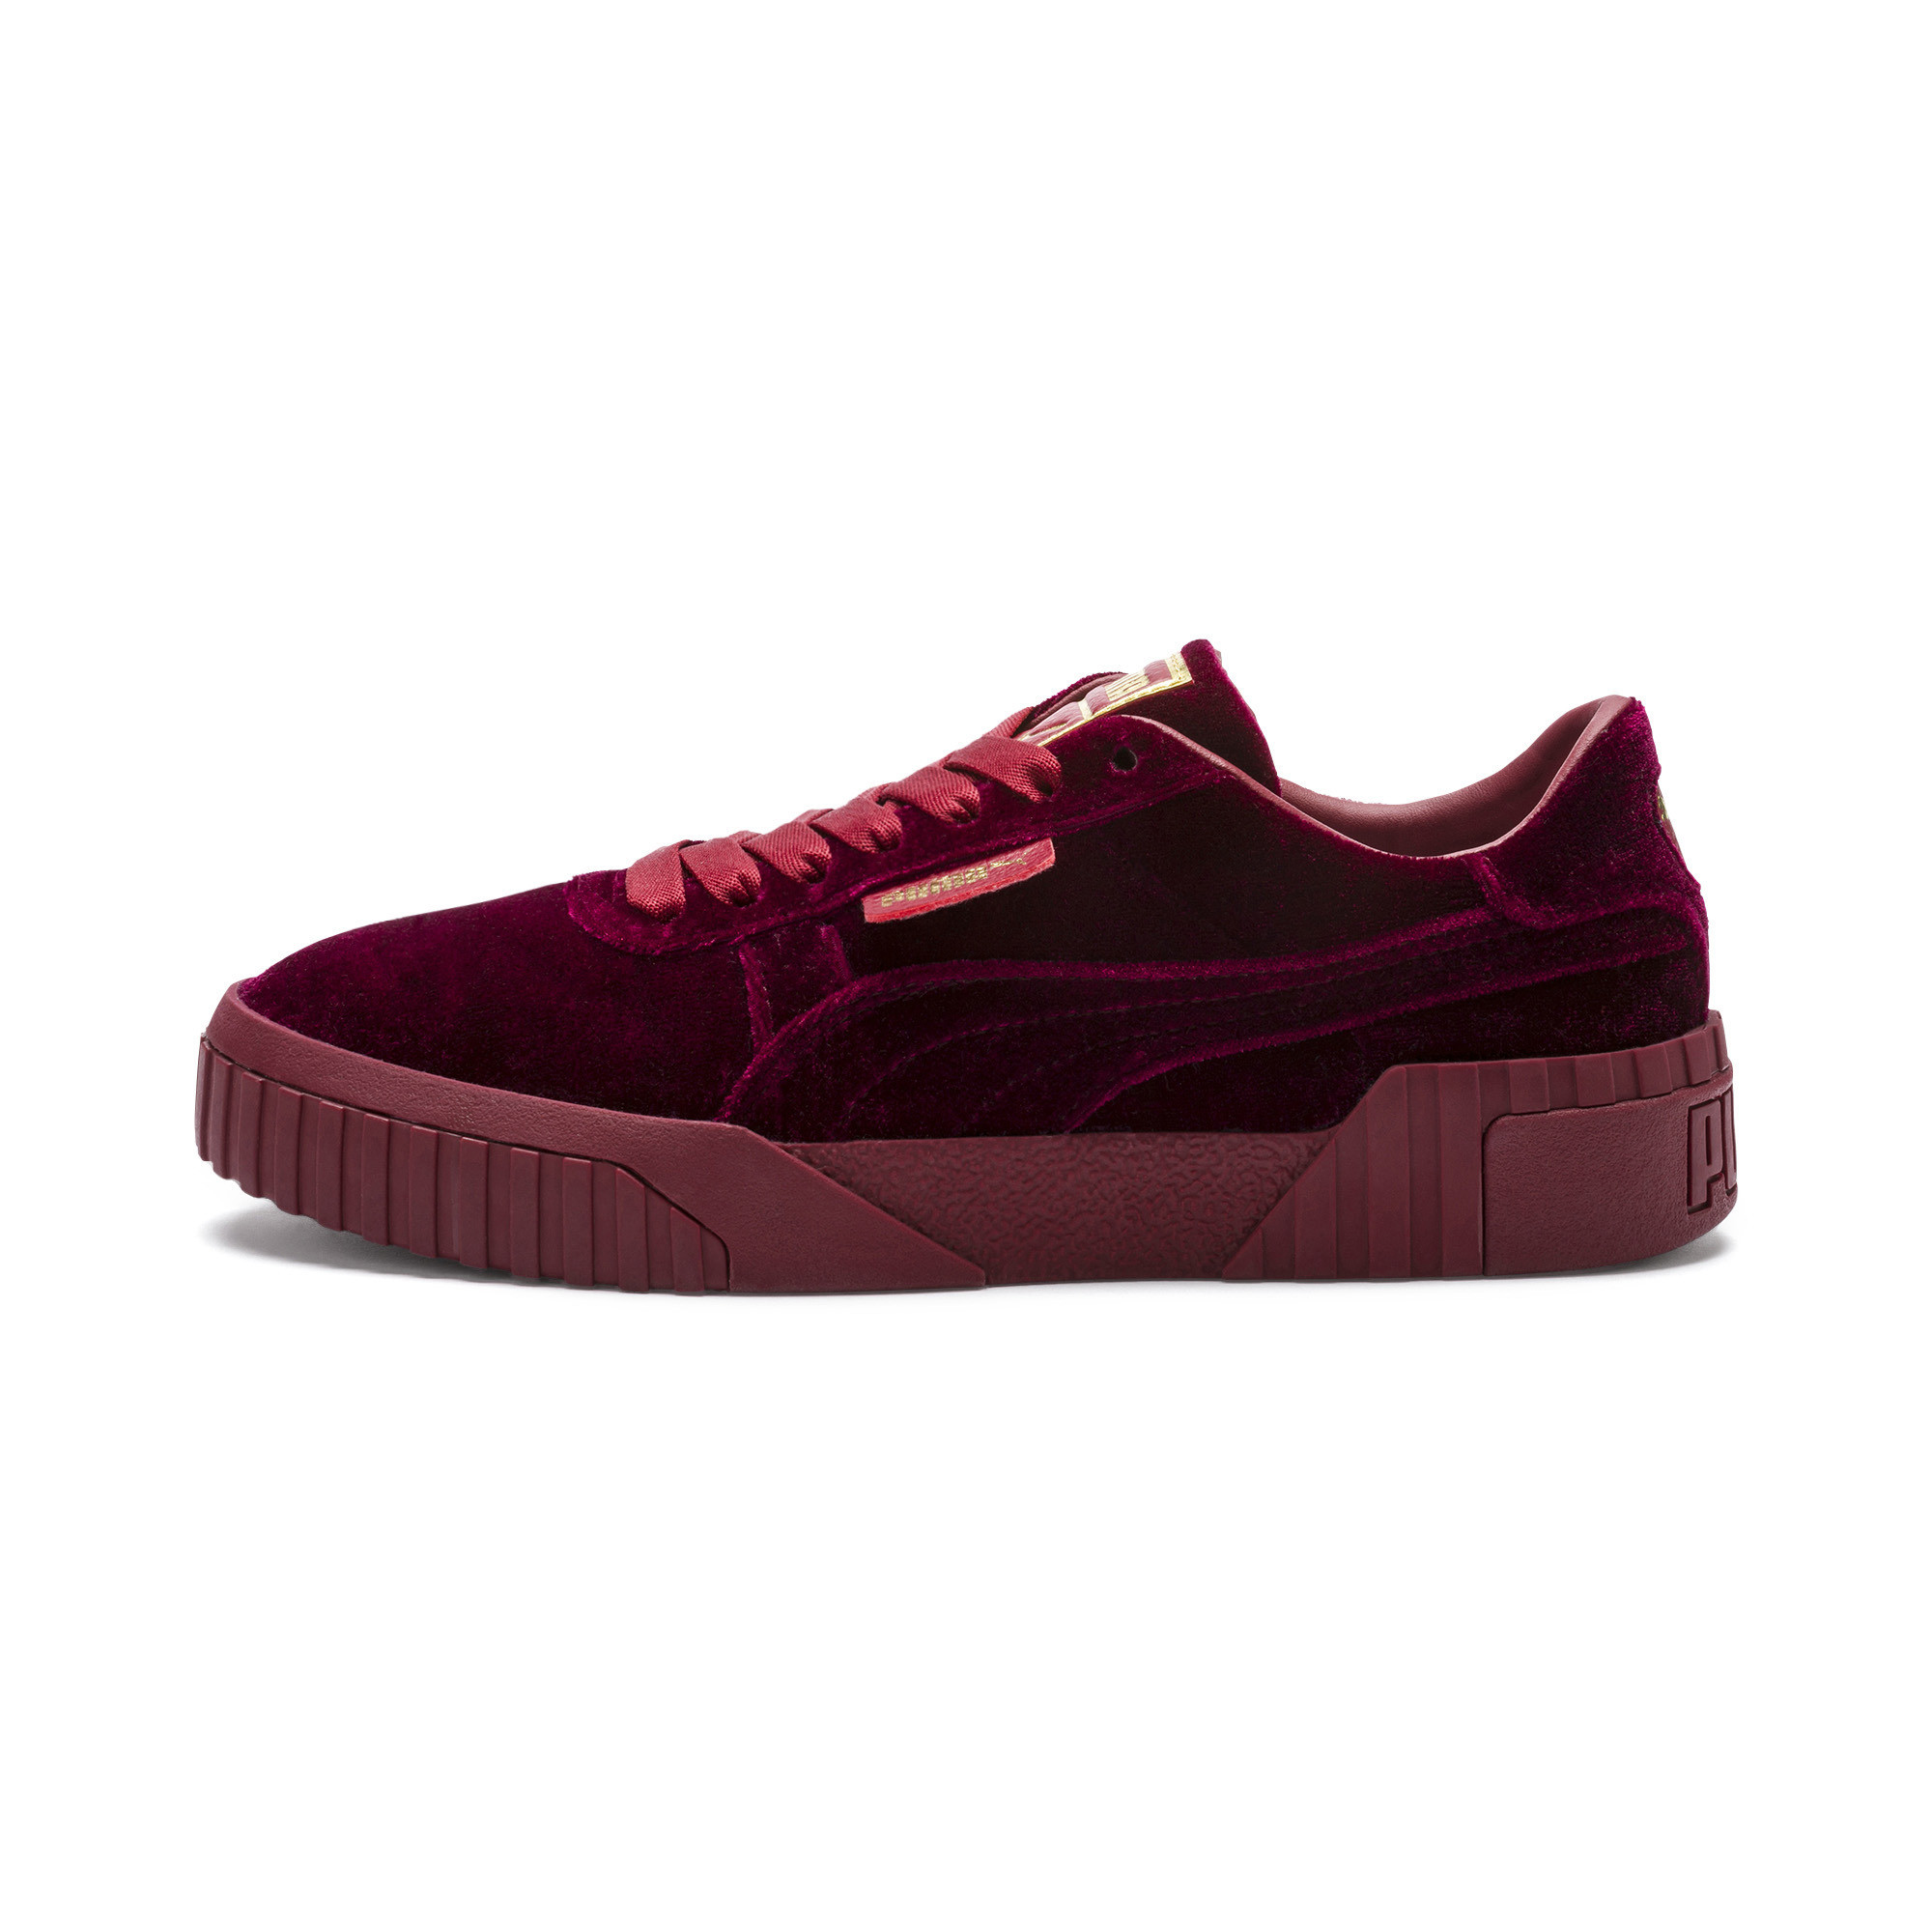 PUMA-Cali-Velvet-Women-039-s-Sneakers-Women-Shoe-Evolution thumbnail 10